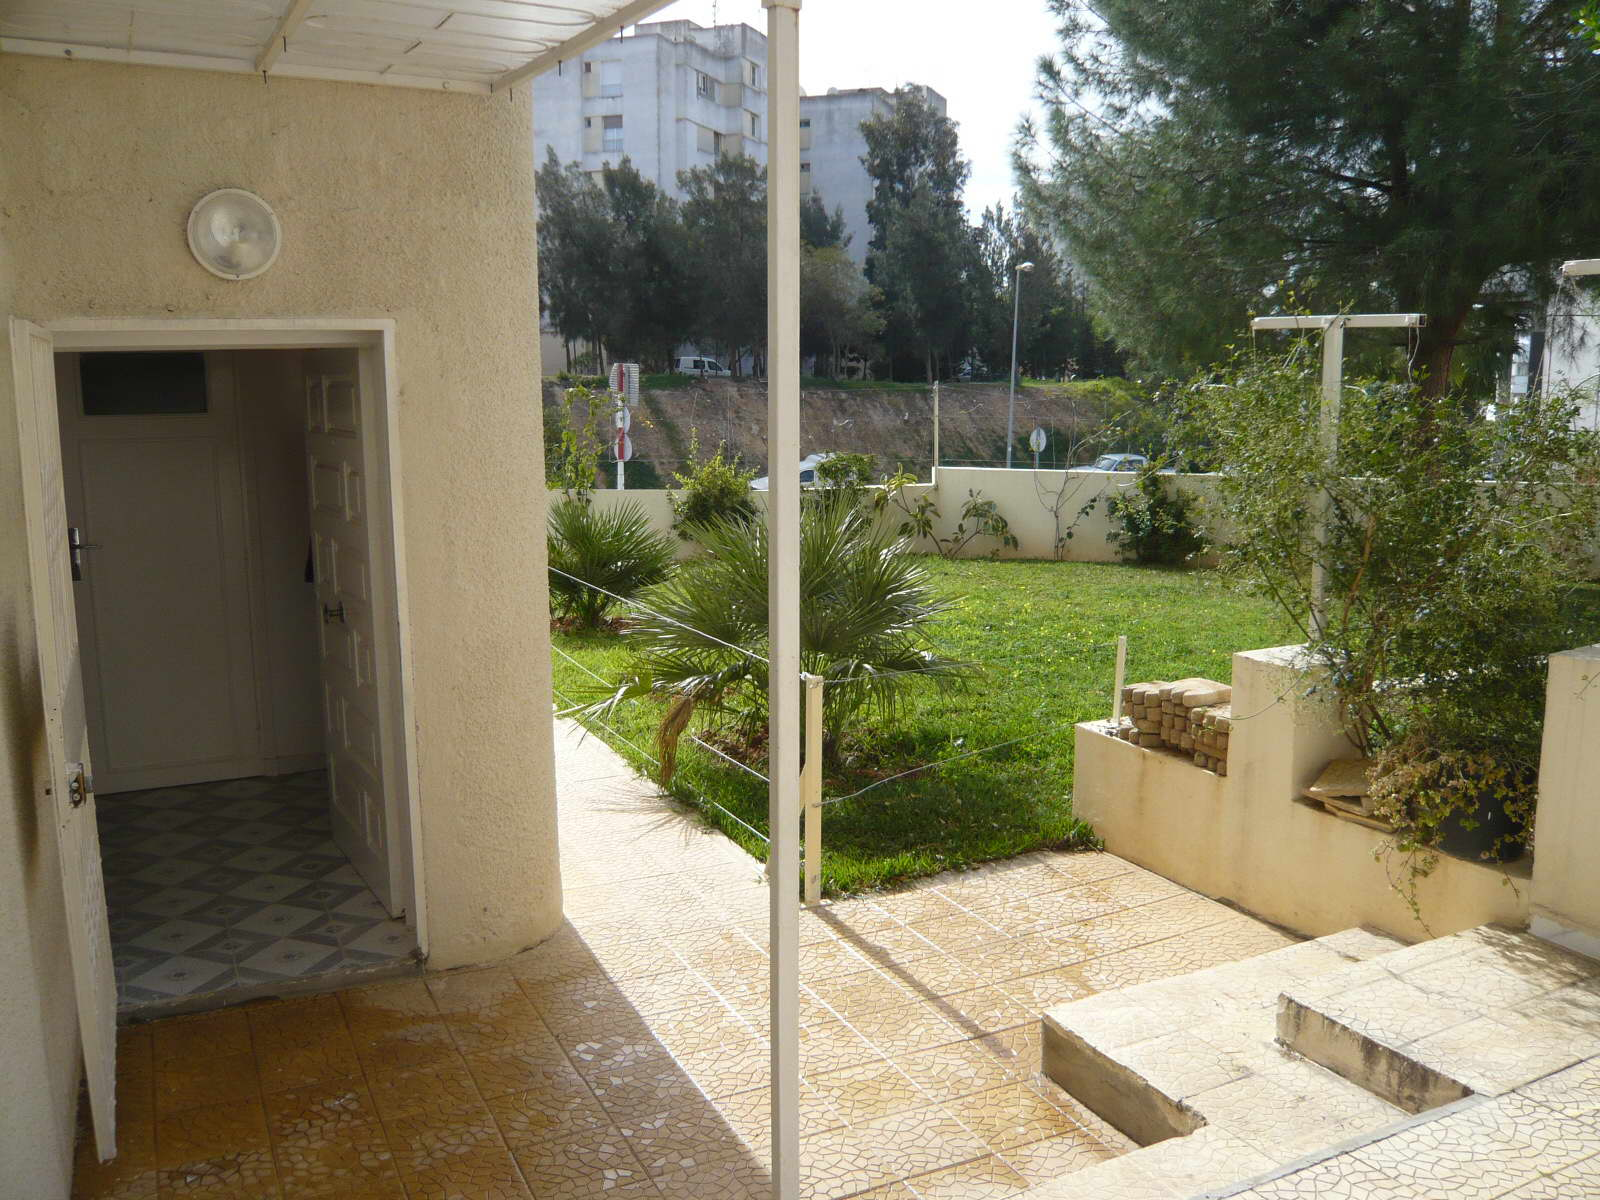 images_immo/tunis_immobilier111026d2.jpg